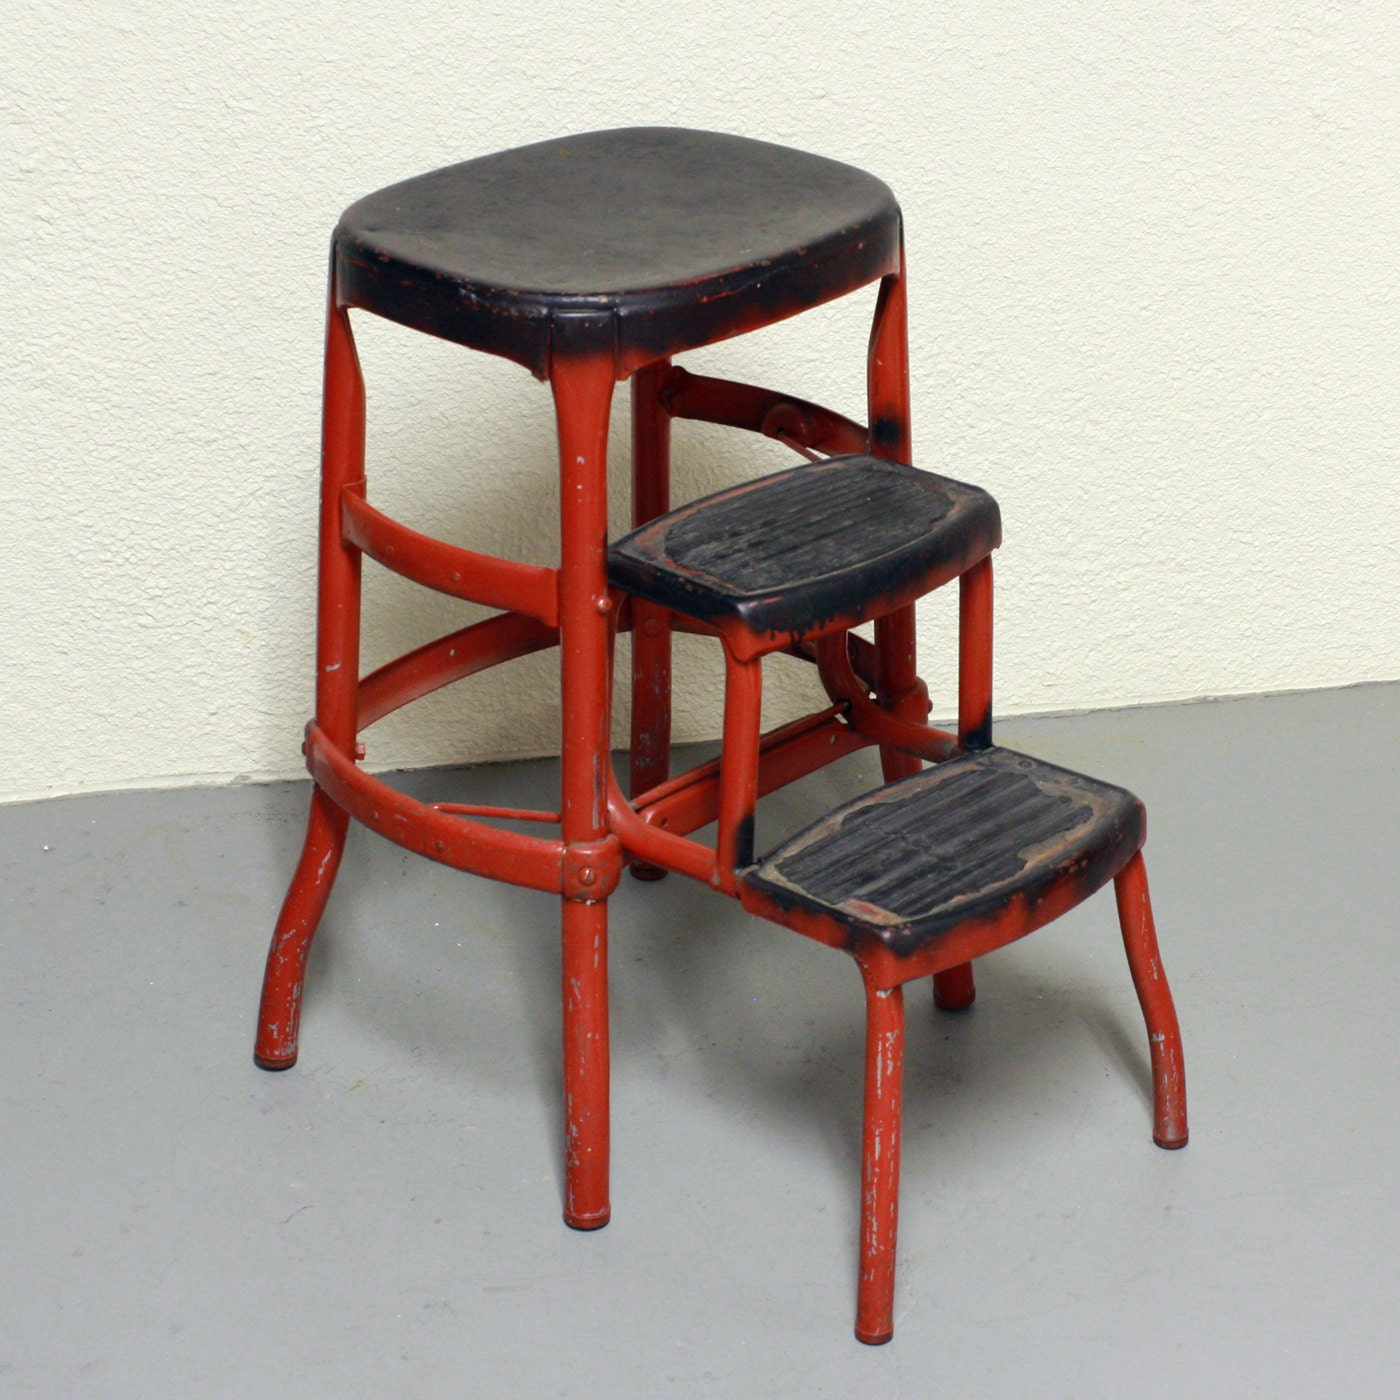 Antique Kitchen Step Stool Chair